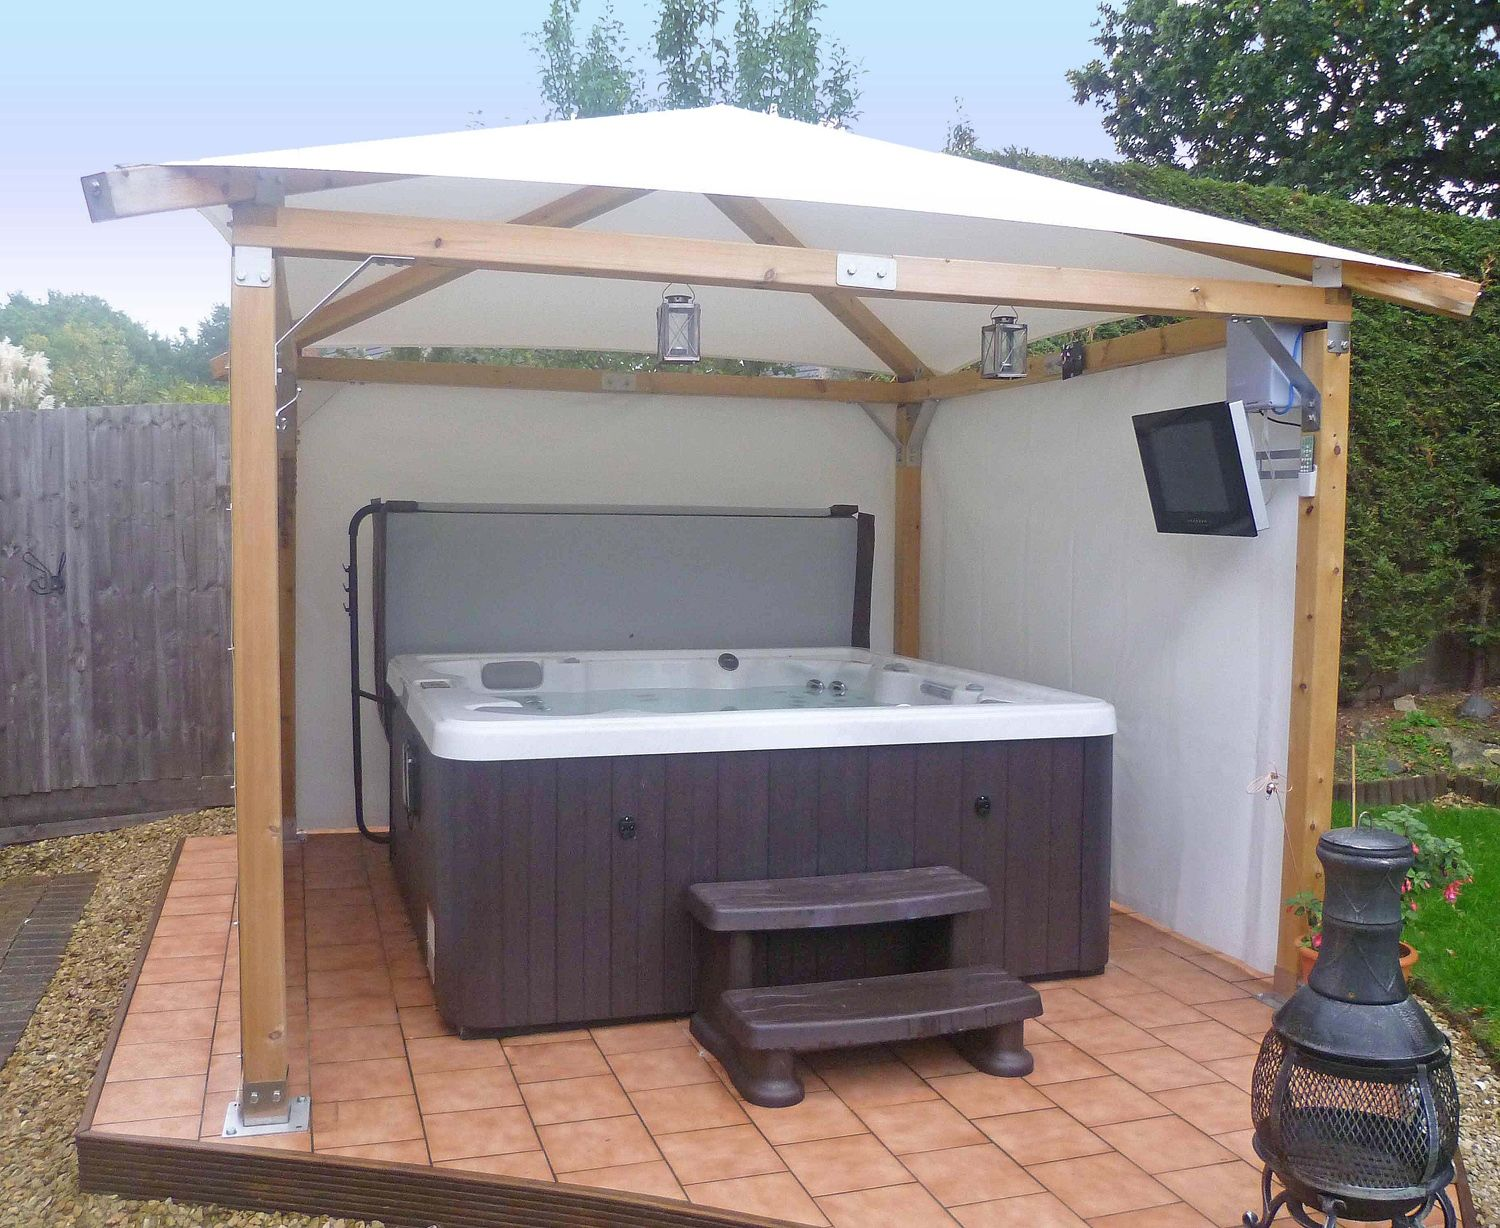 Swim Spa Gazebo Plans Hot Tub Gazebo Hot Tub Cover Hot Tub Privacy